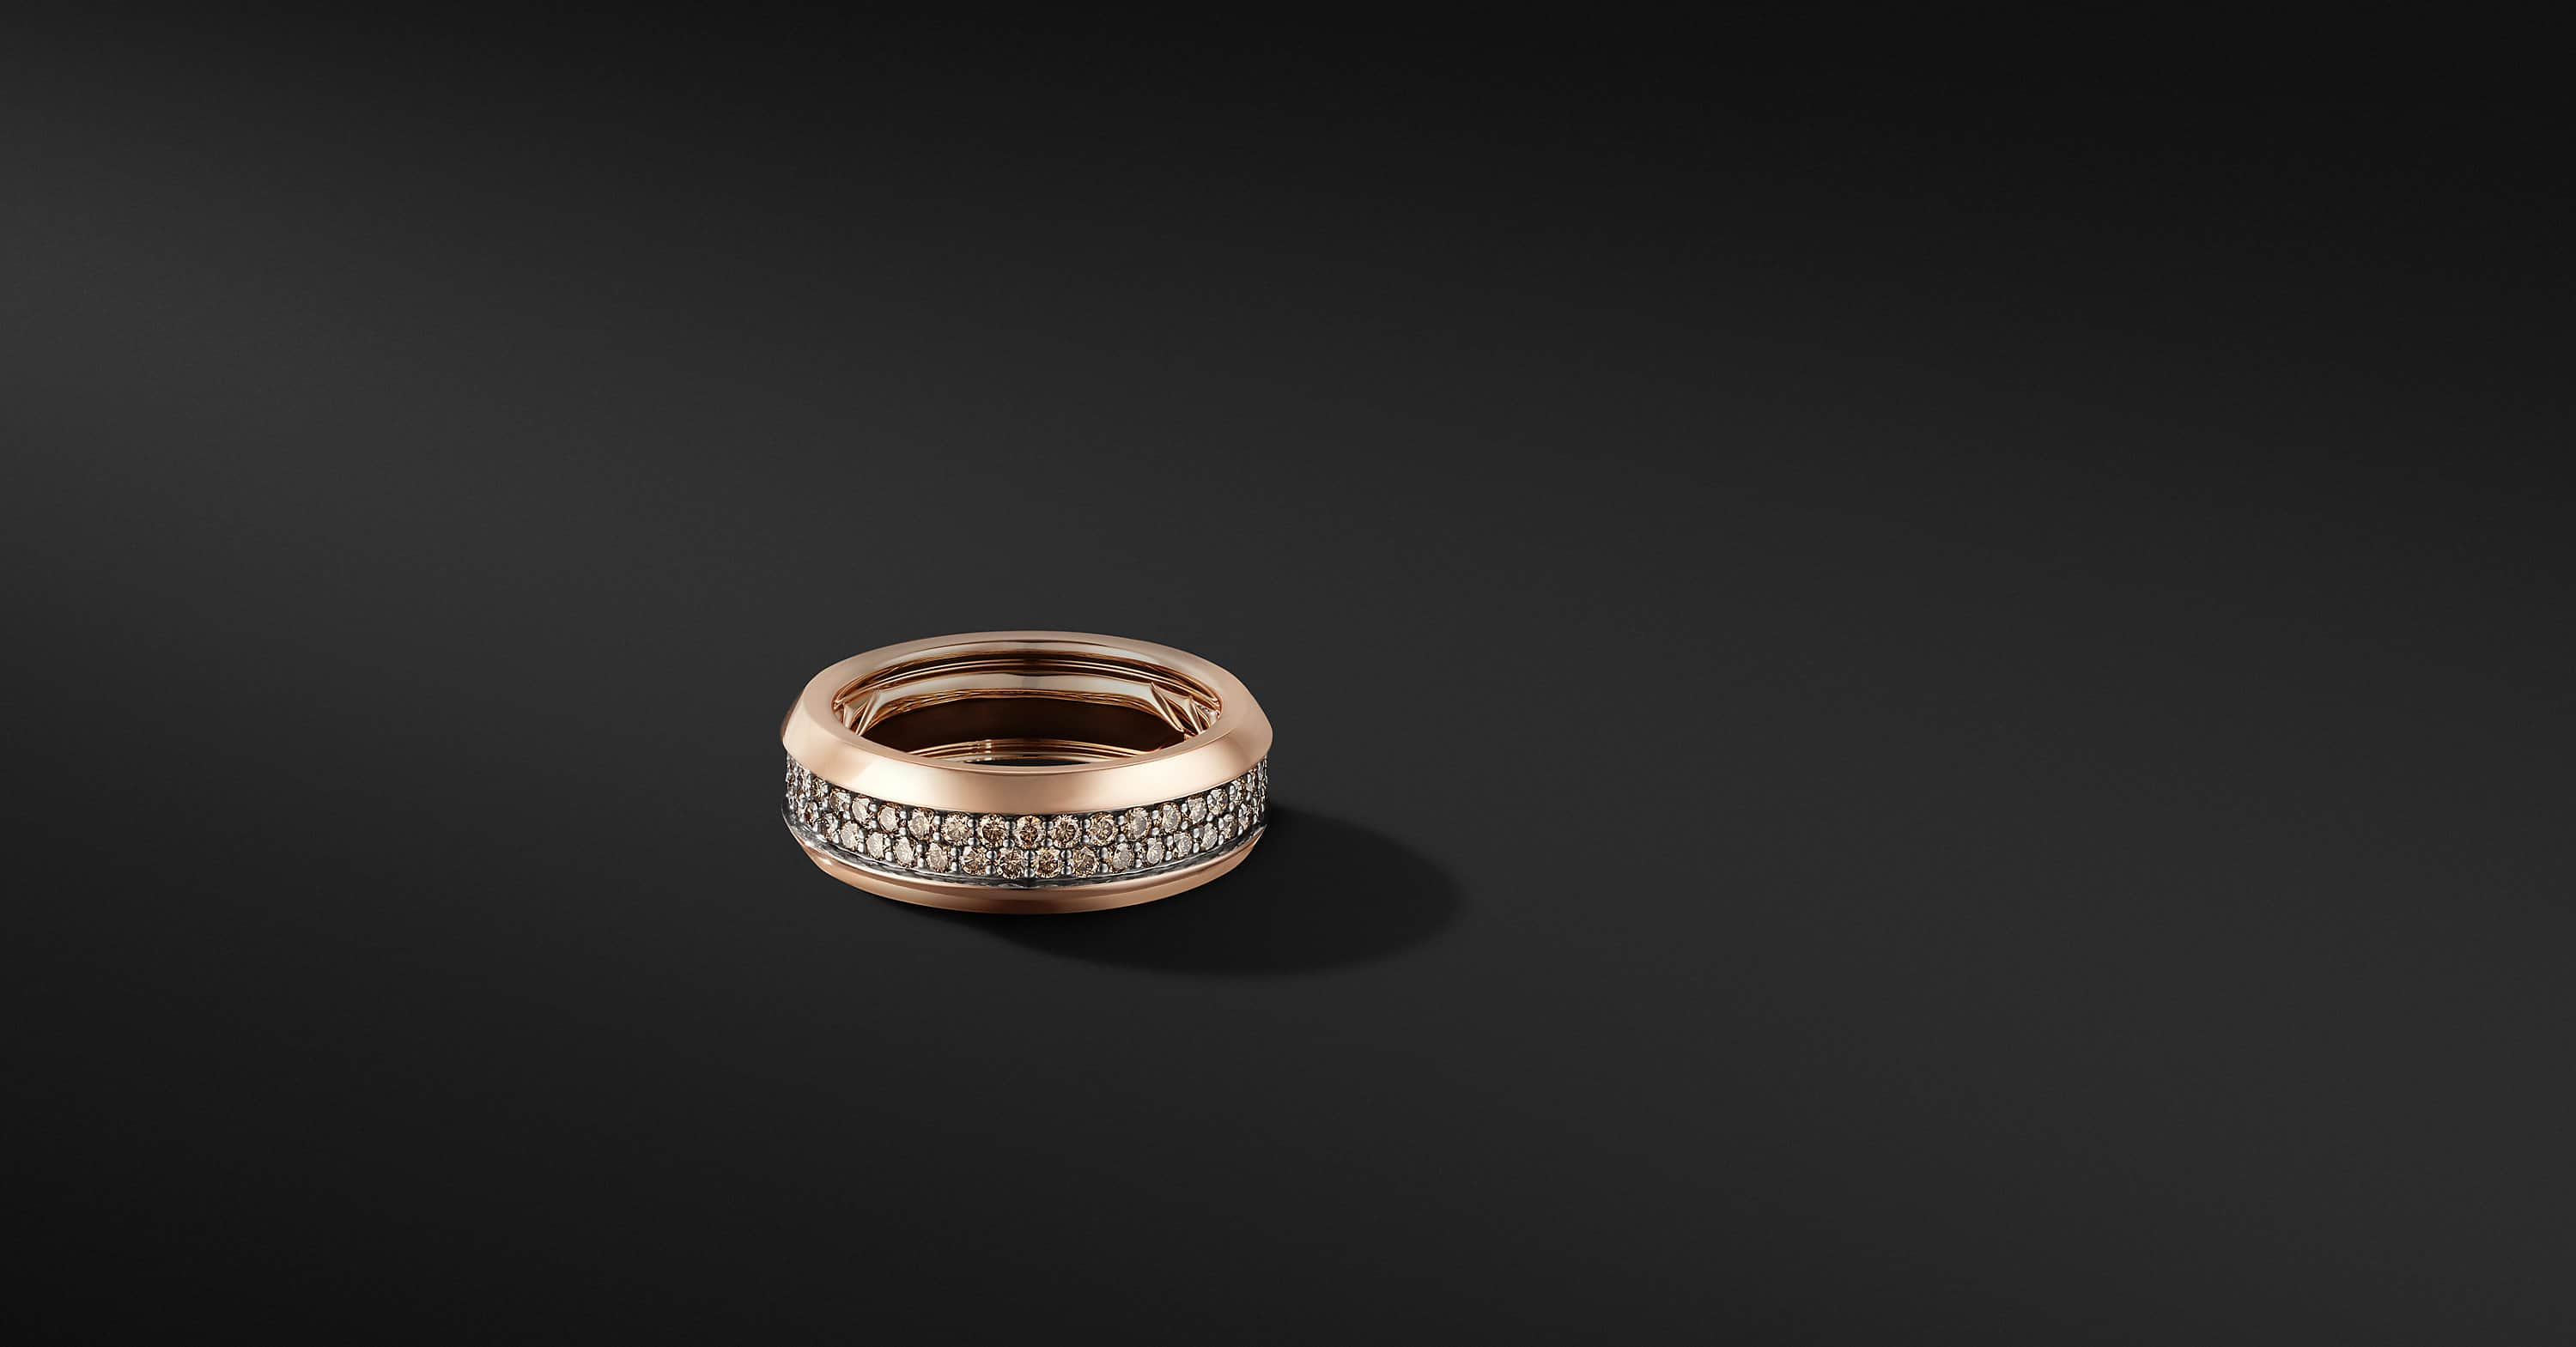 Beveled Two Row Band Ring in 18K Rose Gold, 8mm